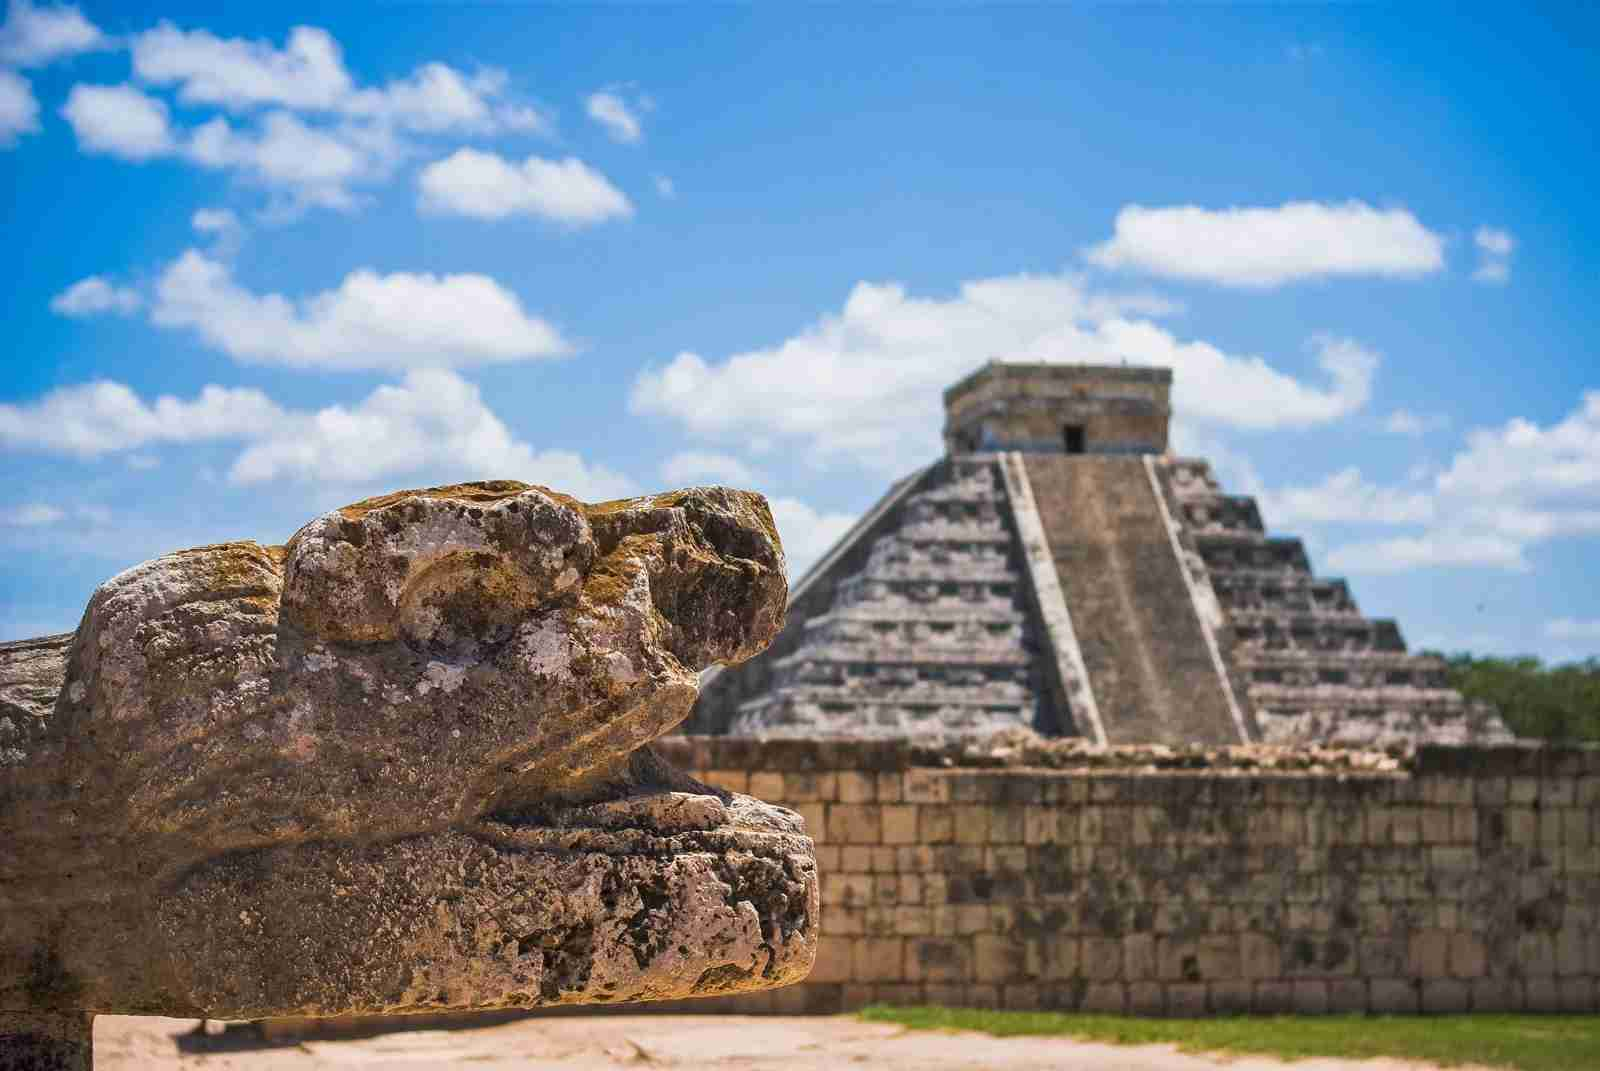 Chichén Itzá on the Yucatan Peninsula. (Photo by Marv Watson / Unsplash)